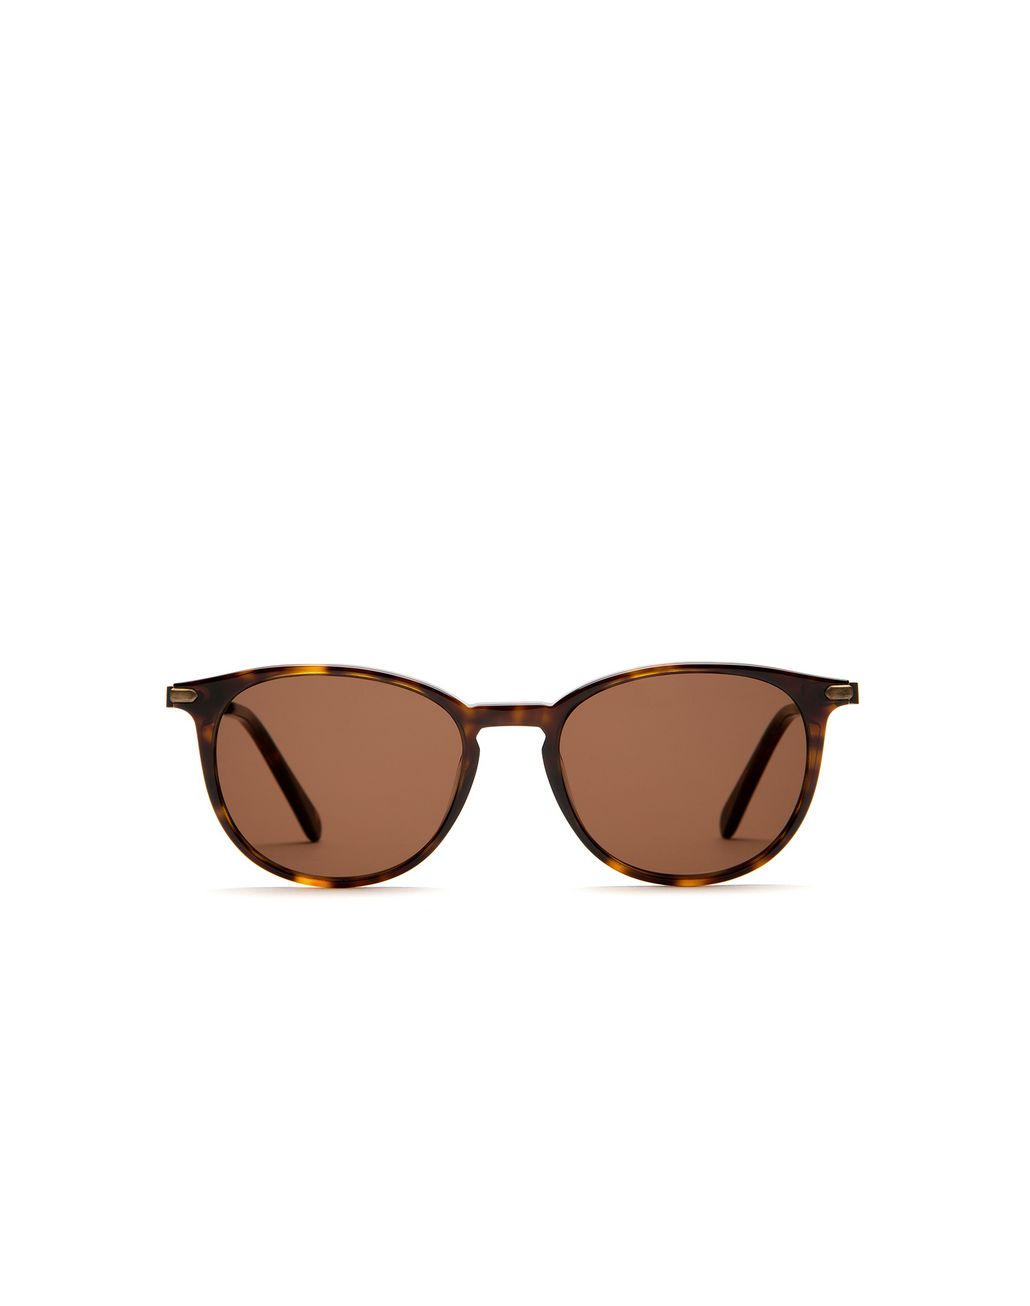 BRIONI Shiny Dark Havana Retro Pantos Sunglasses Sunglasses [*** pickupInStoreShippingNotGuaranteed_info ***] f